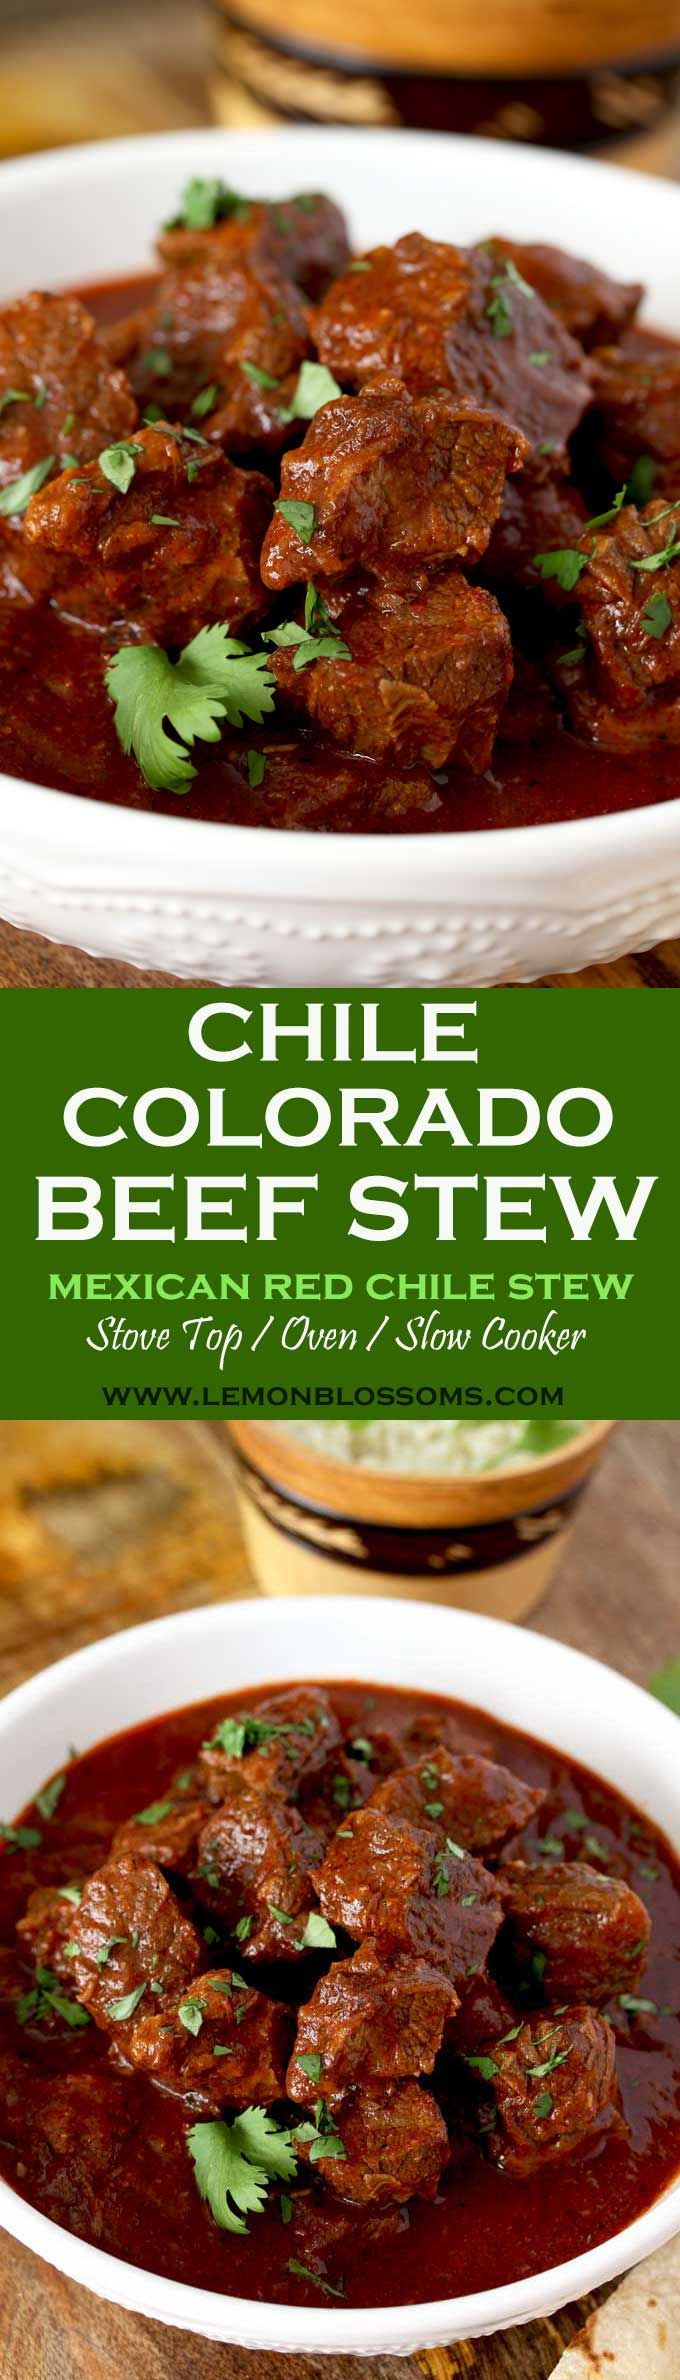 This rich and hearty Chile Colorado Beef Stew is lip-smacking good! Beef chunks are simmered in a Mexican style red chile sauce until fall-apart tender. A meal in itself and perfect for tacos or burritos! Stove Top, Oven and Slow Cooker Instructions Provided. via @lmnblossoms